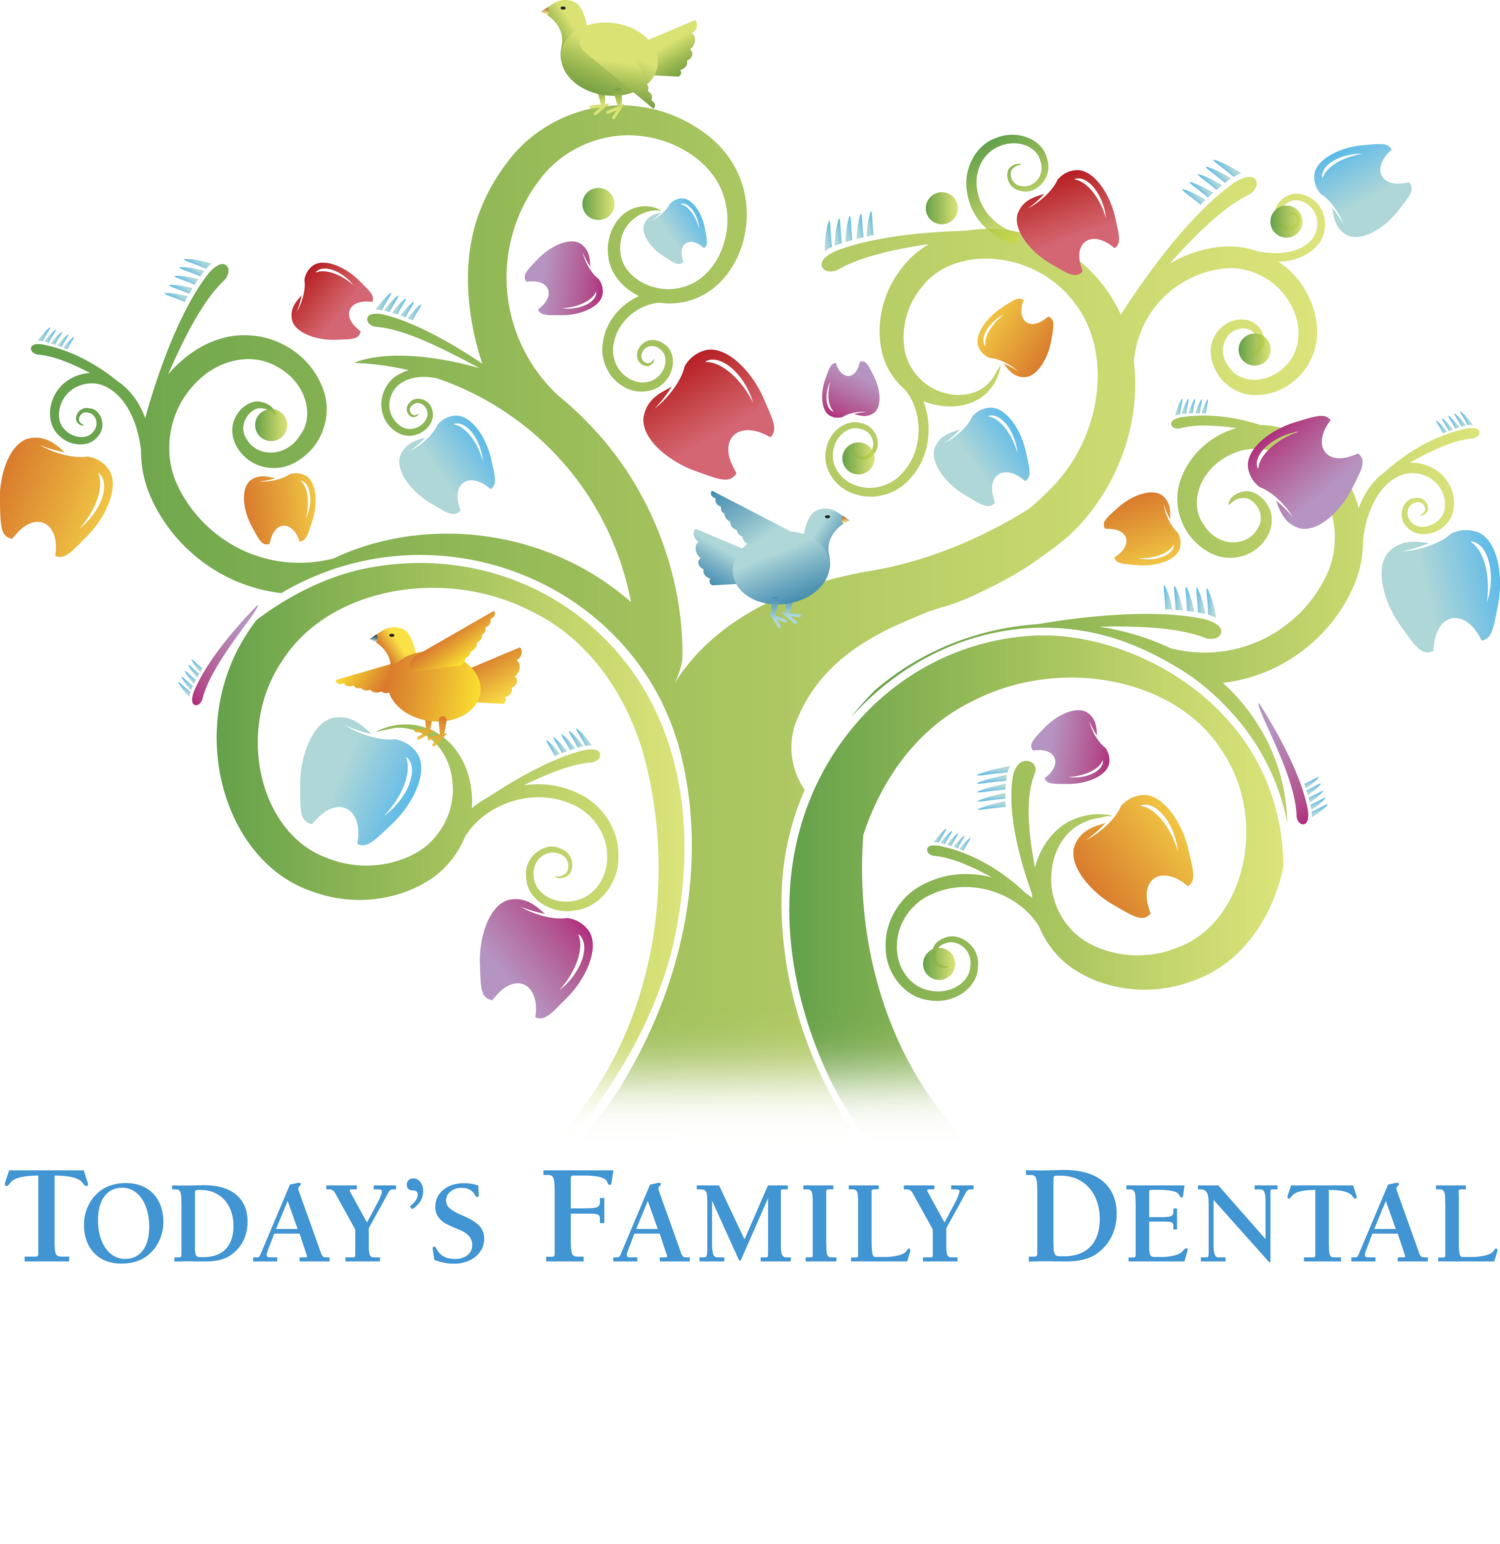 Today's Family Dental